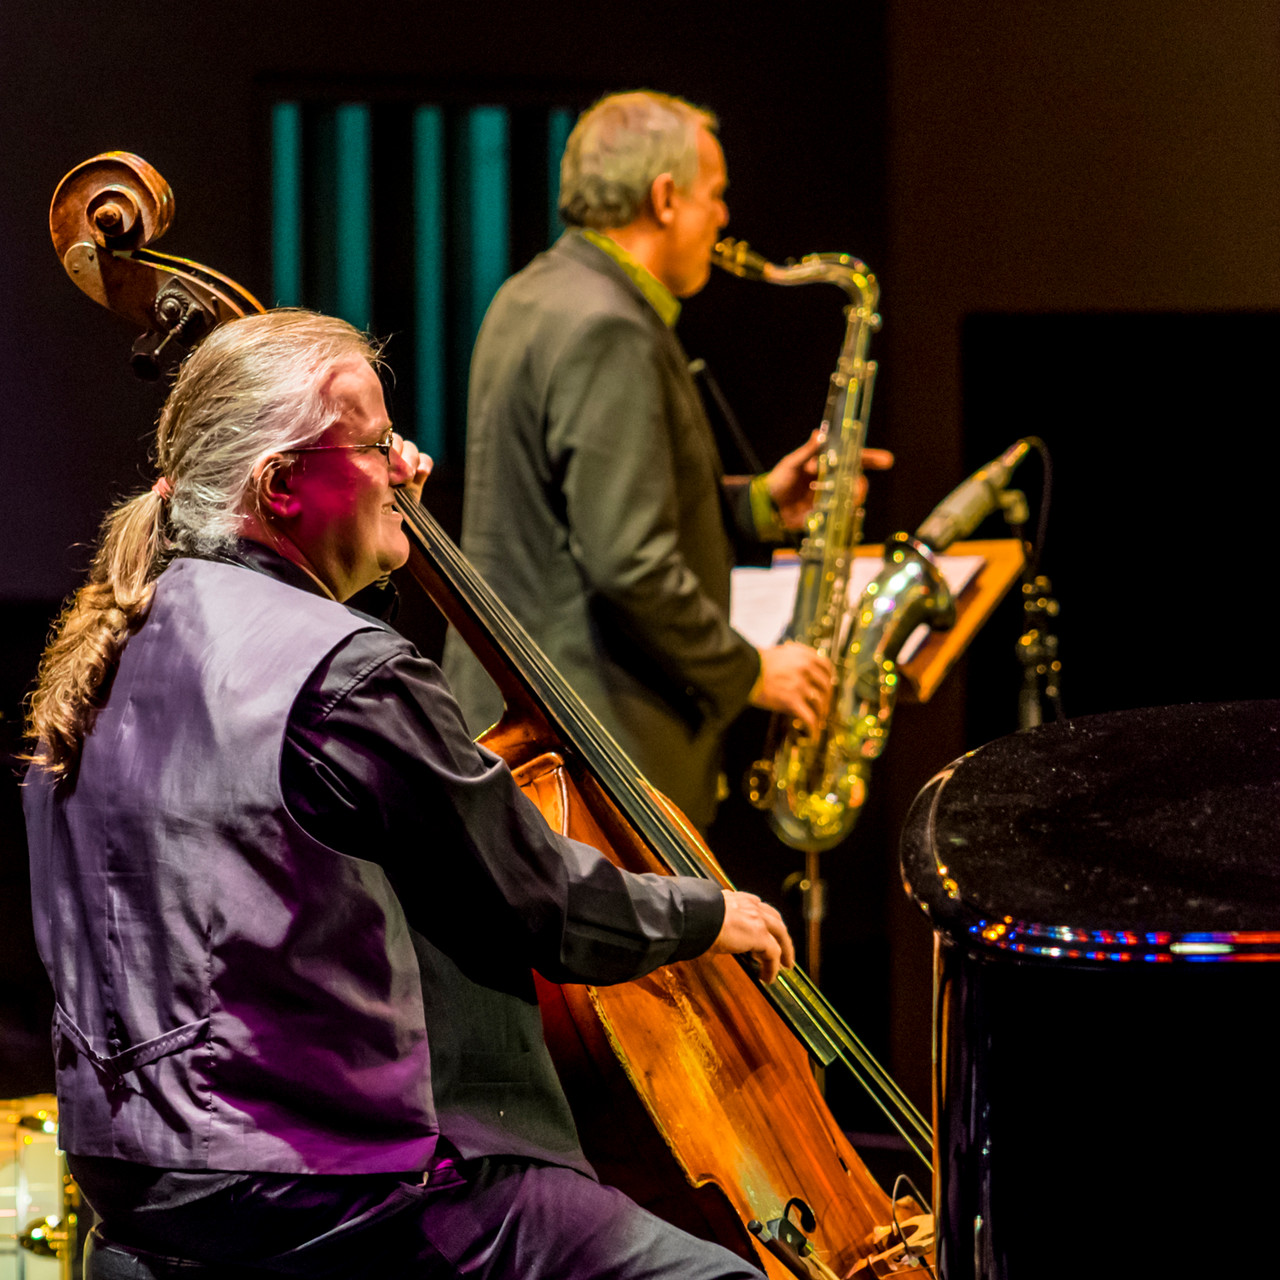 Big Easy in Concert, Stadthalle - Paul G. Ulrich